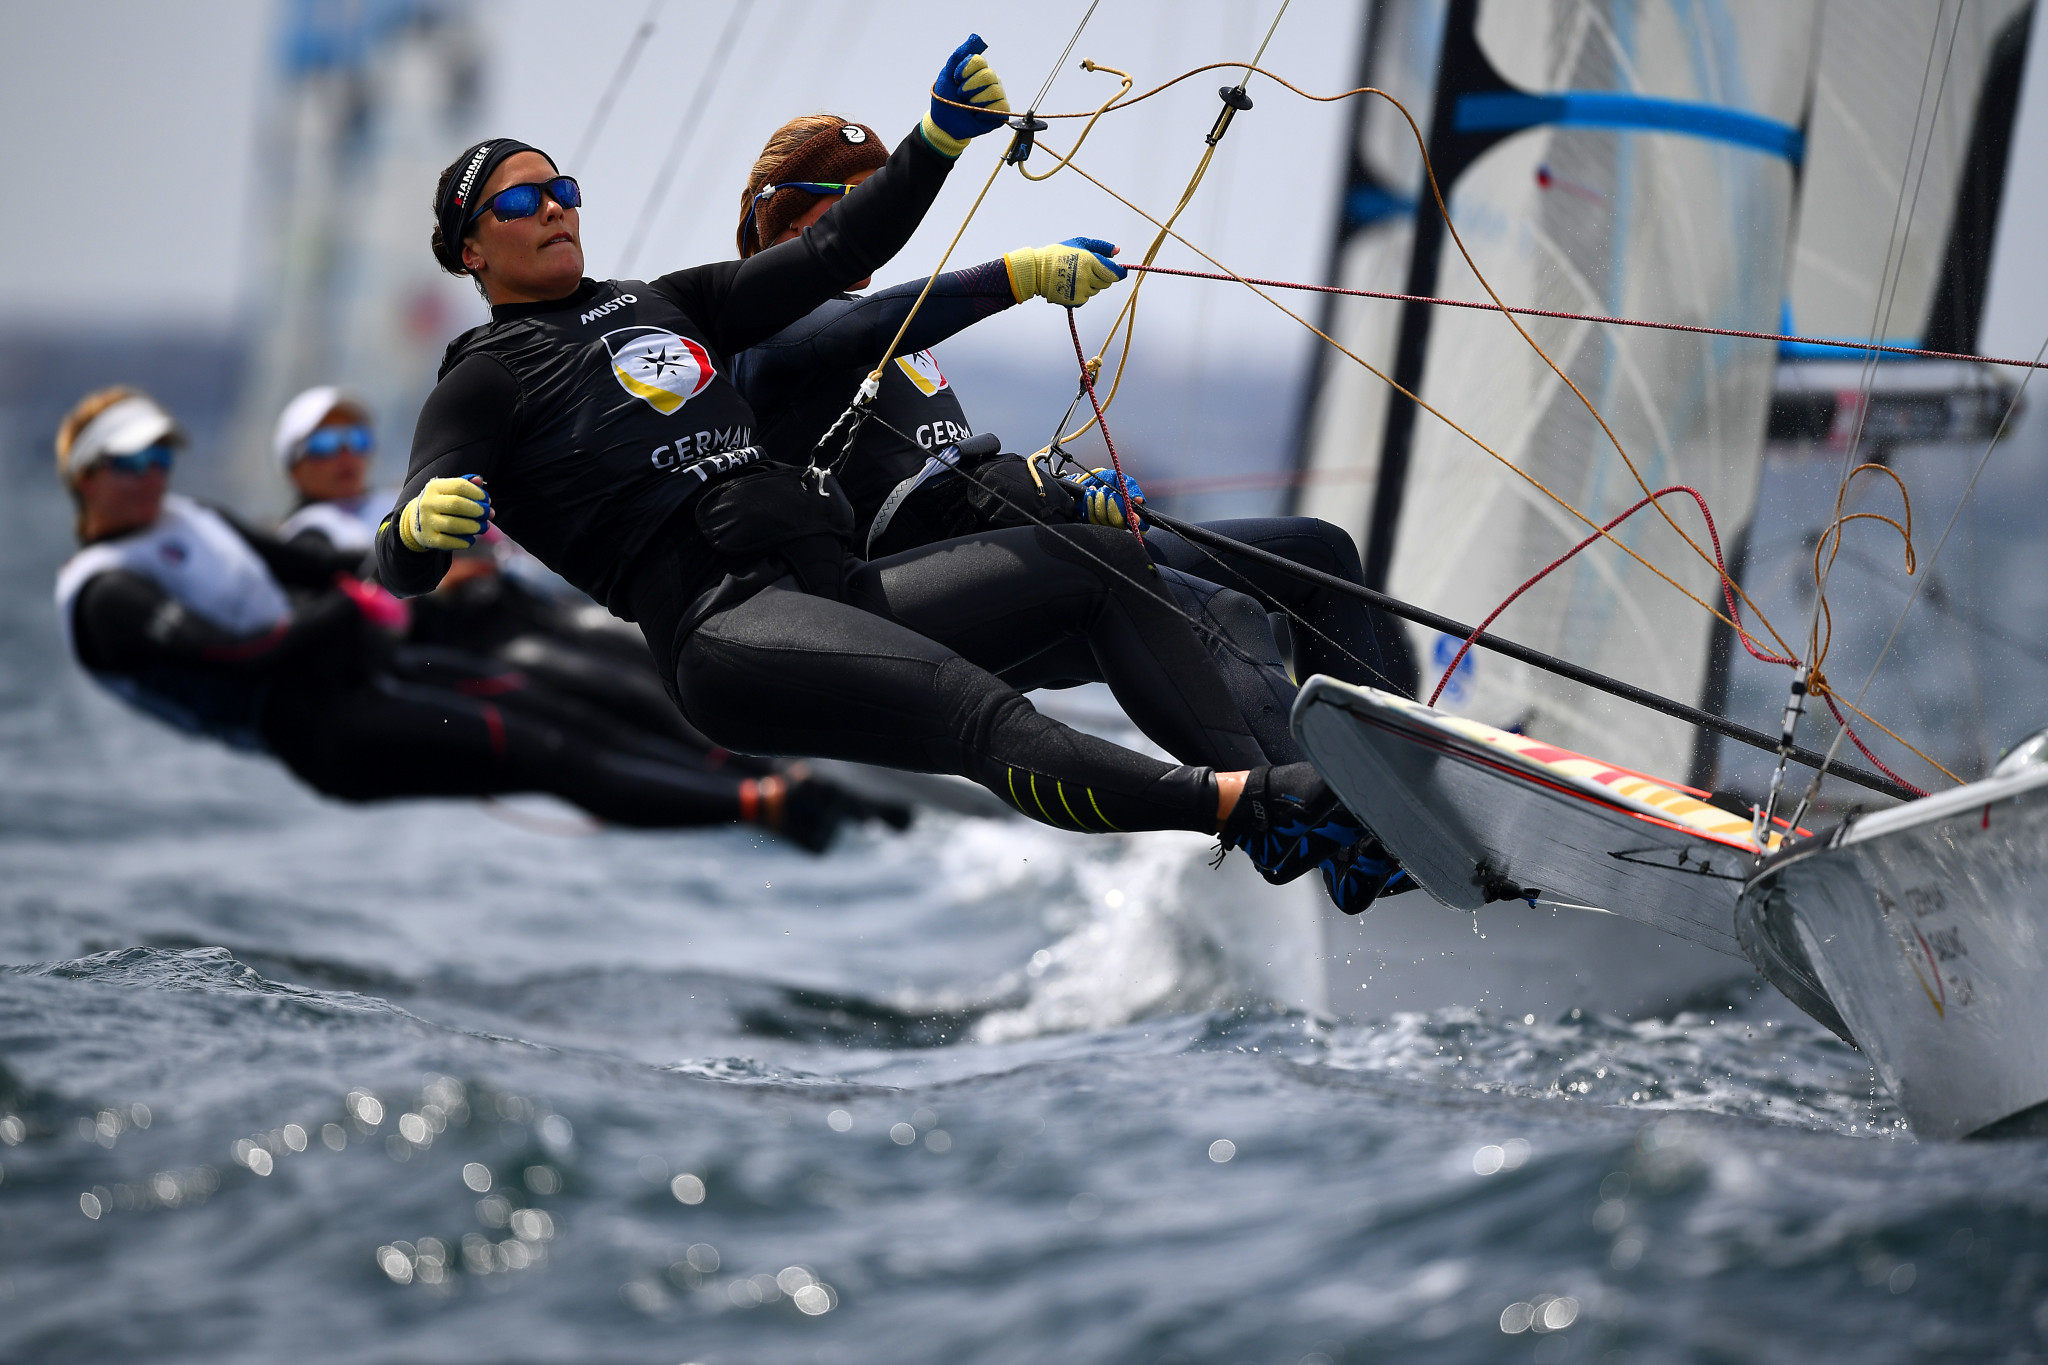 Some of the world's best sailors in the 49er, 49erFX, and Nacra 17 classes are set to compete in Oman ©Getty Images